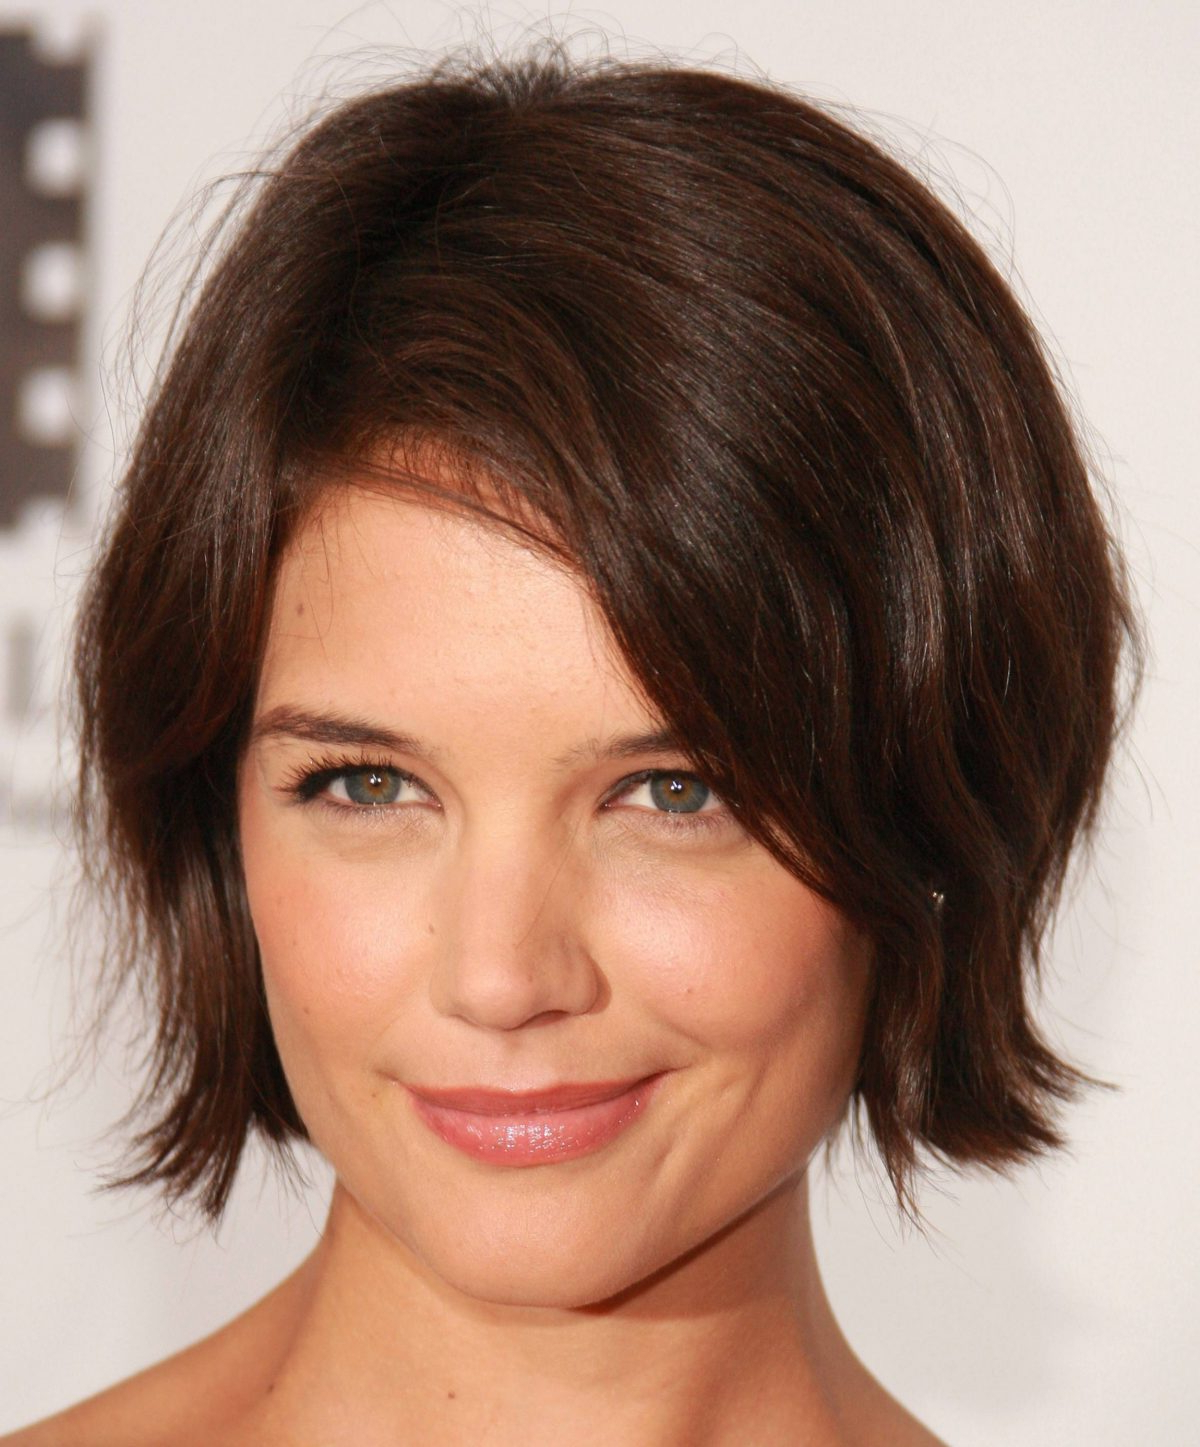 Best Short Hairstyles – Cute Hair Cut Guide For Round Face Shape Pertaining To Short Haircuts For Different Face Shapes (View 25 of 25)